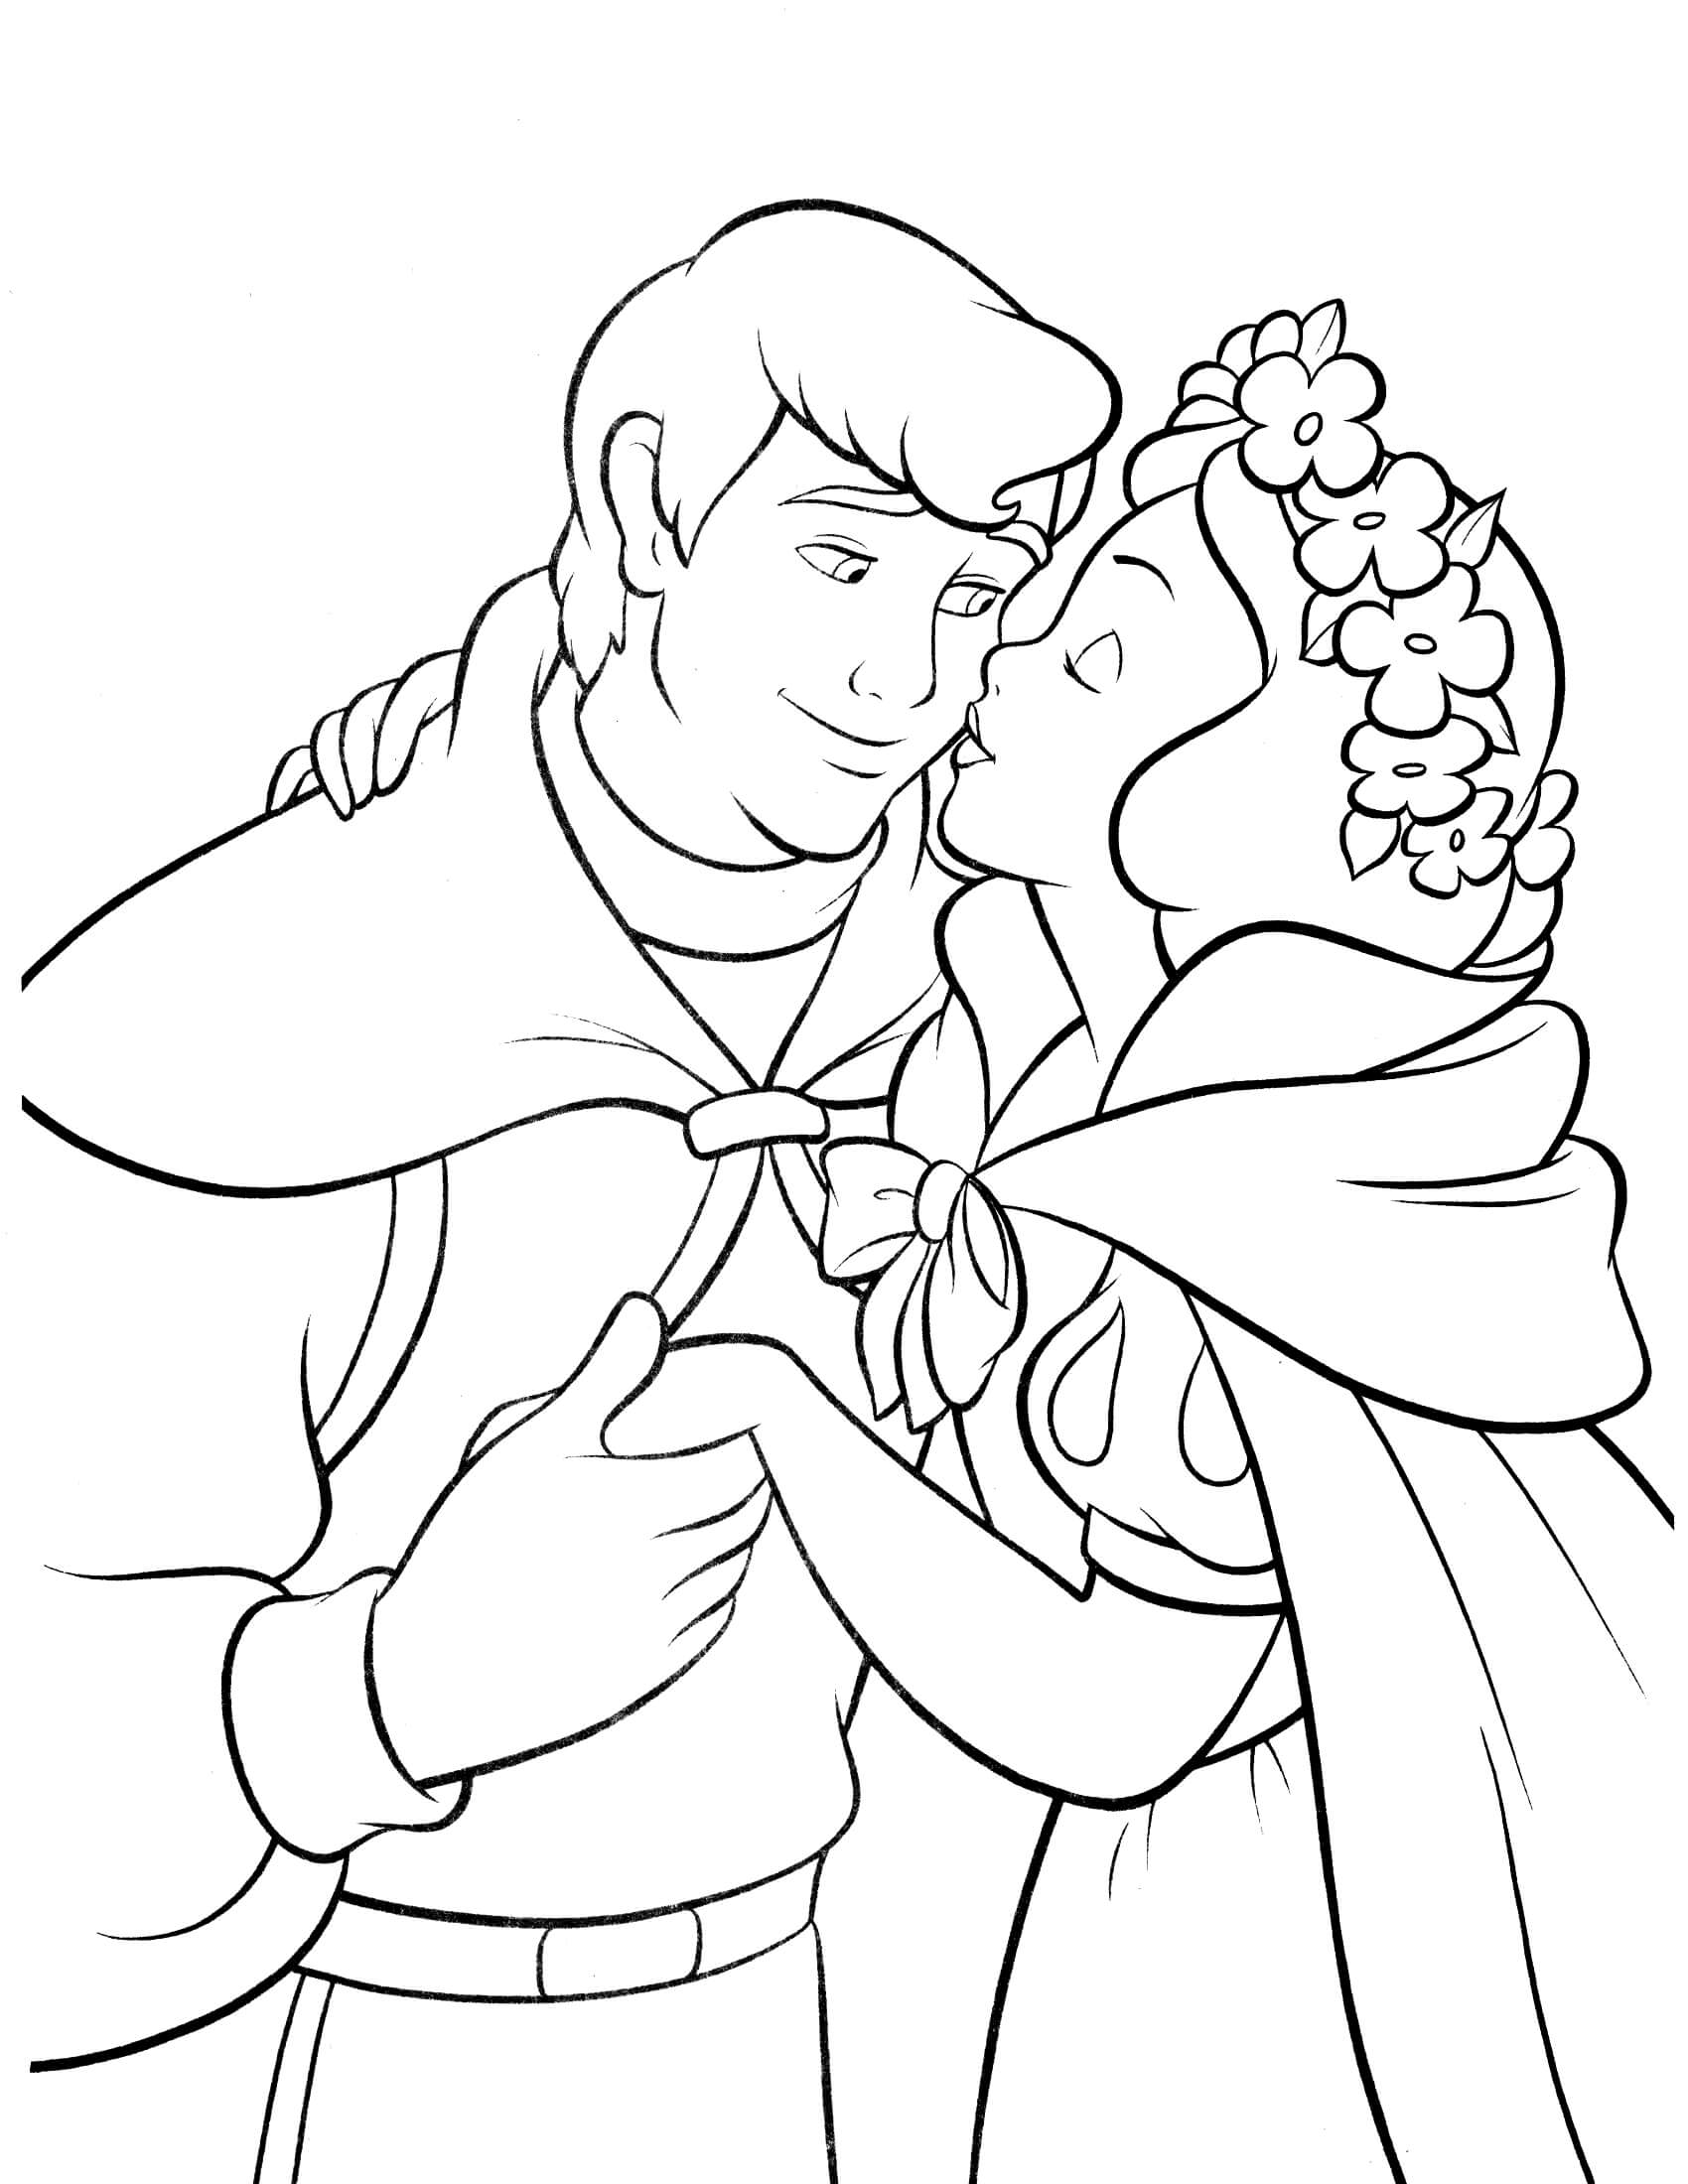 snowwhite coloring snow white coloring pages best coloring pages for kids snowwhite coloring